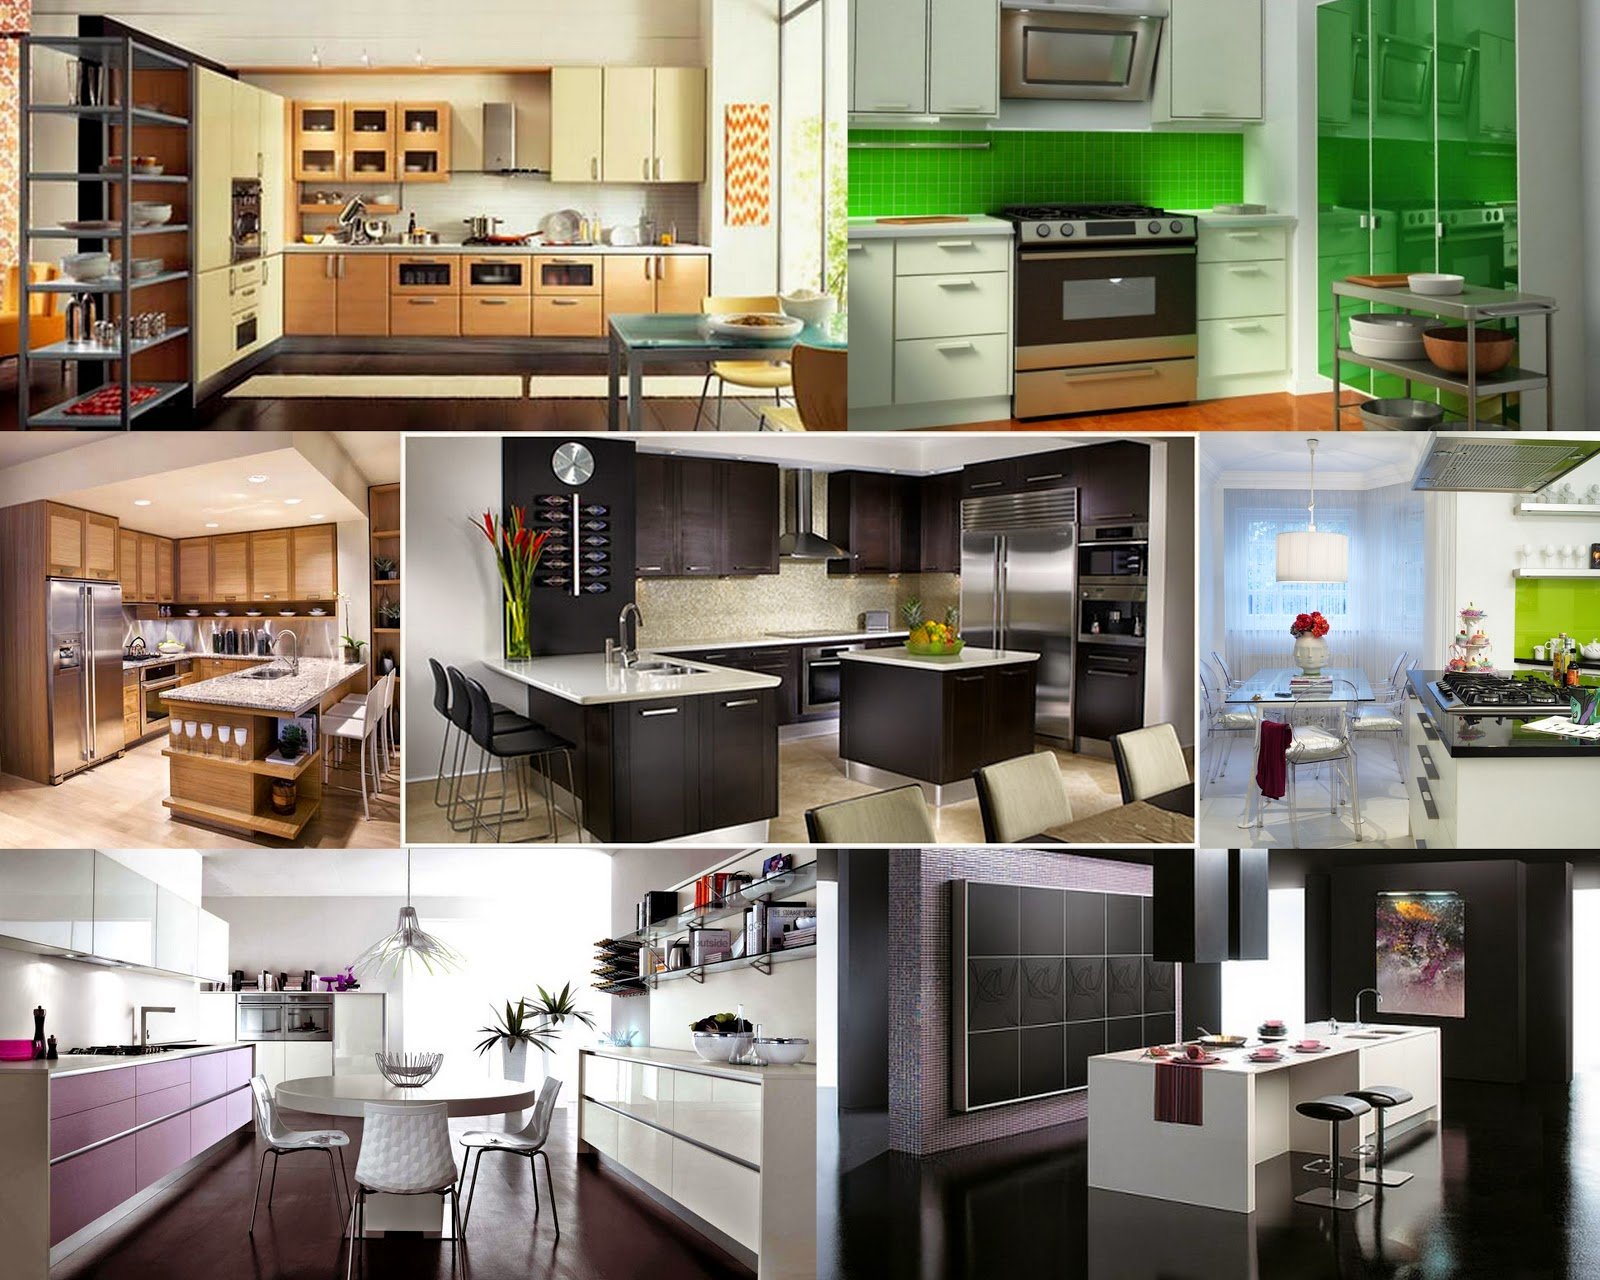 Modern Kitchens For Cooking And Dining